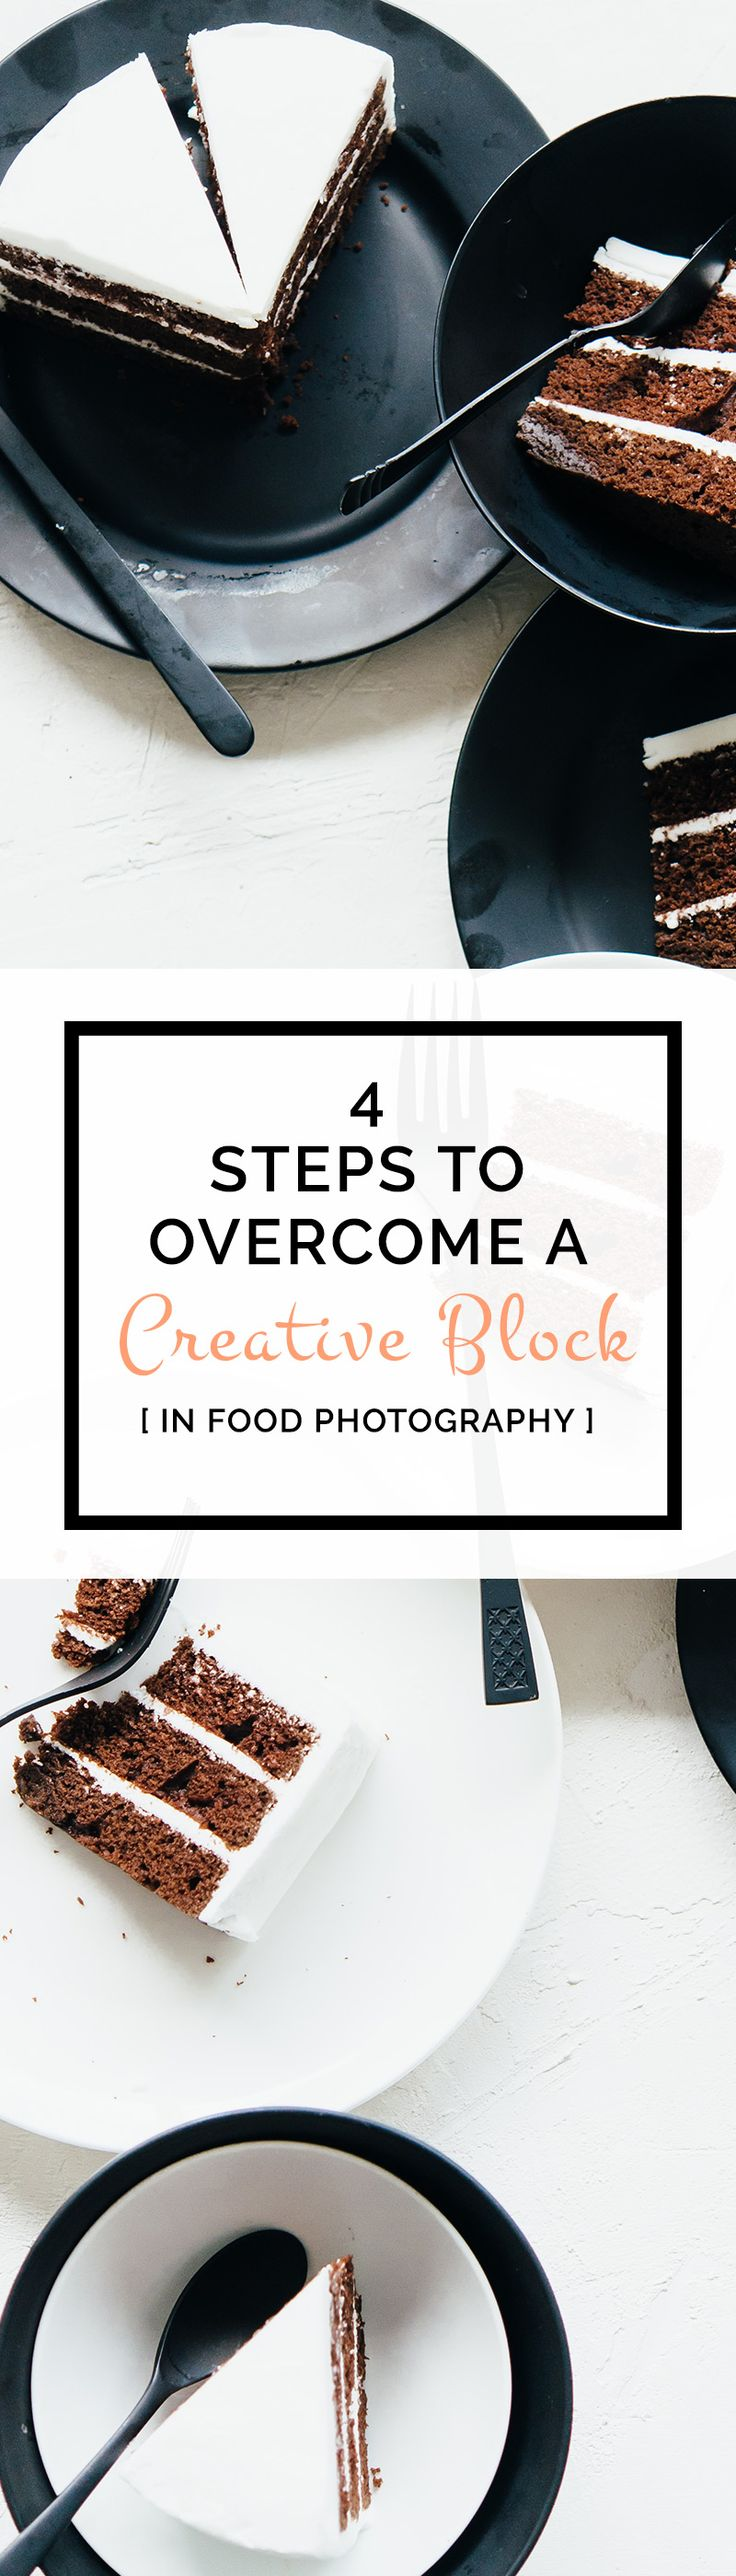 #digitalmarketing . 4 Steps to Overcome a Creative Block in Food Photography | What do you do if our arch nemesis strikes whilst we are shooting? Even worse, you're on set and the client is watching you struggle! Check out these 4 steps that'll have you back on your photography game in no time.